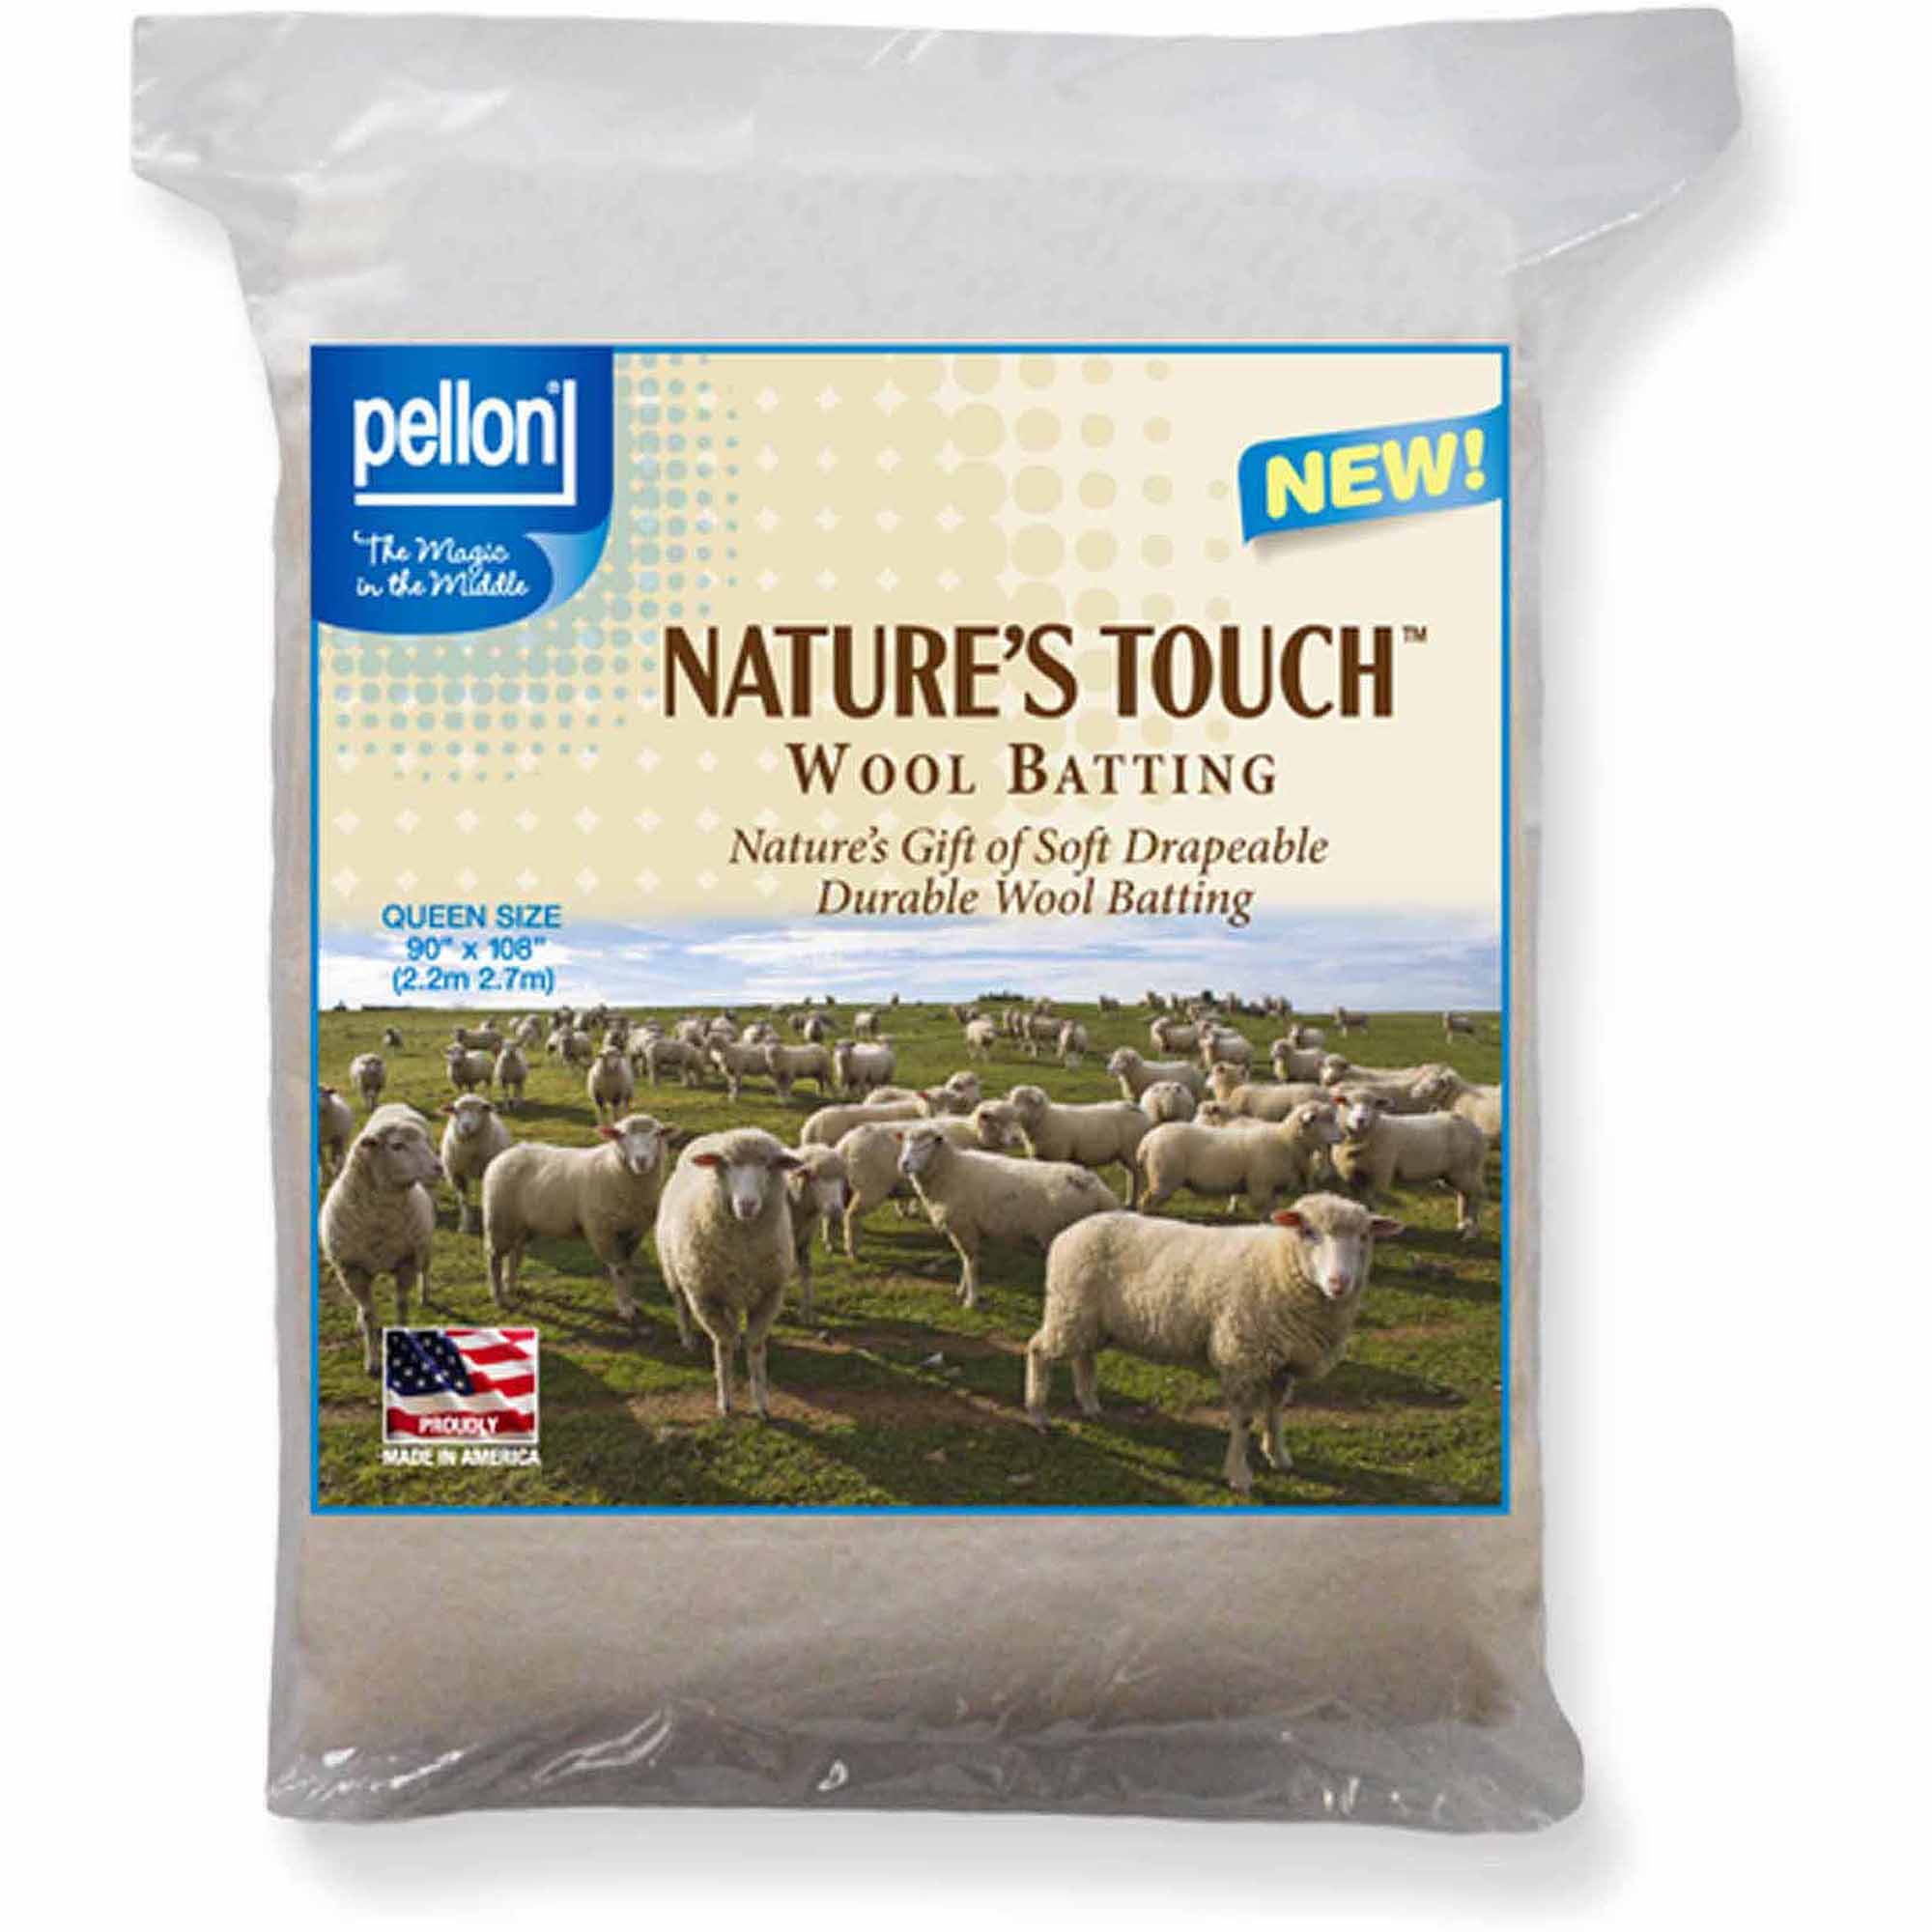 Pellon Nature's Touch Wool Batting, Queen-Sized